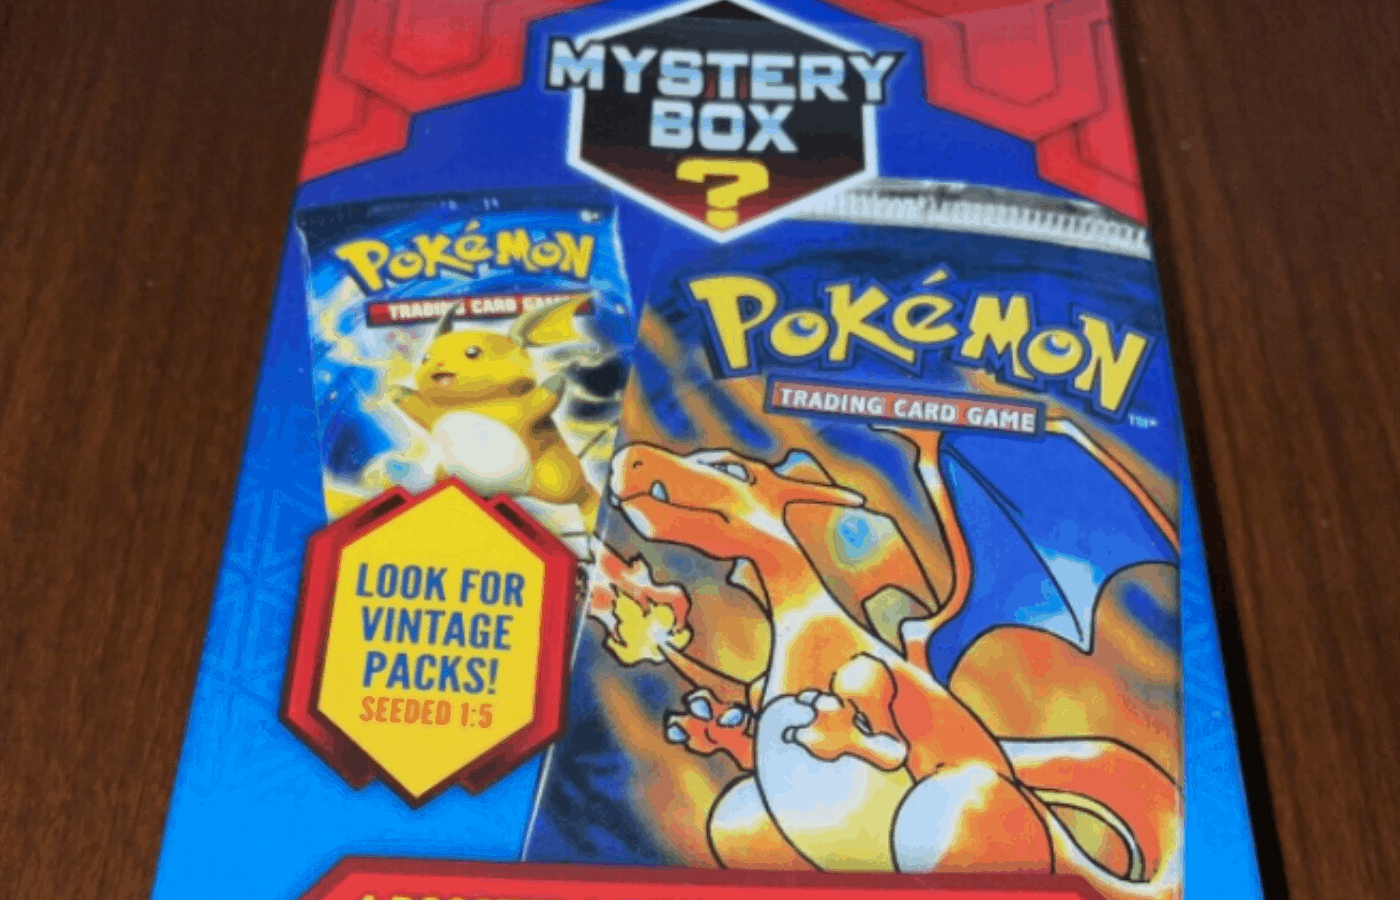 can you weigh pokemon mystery boxes